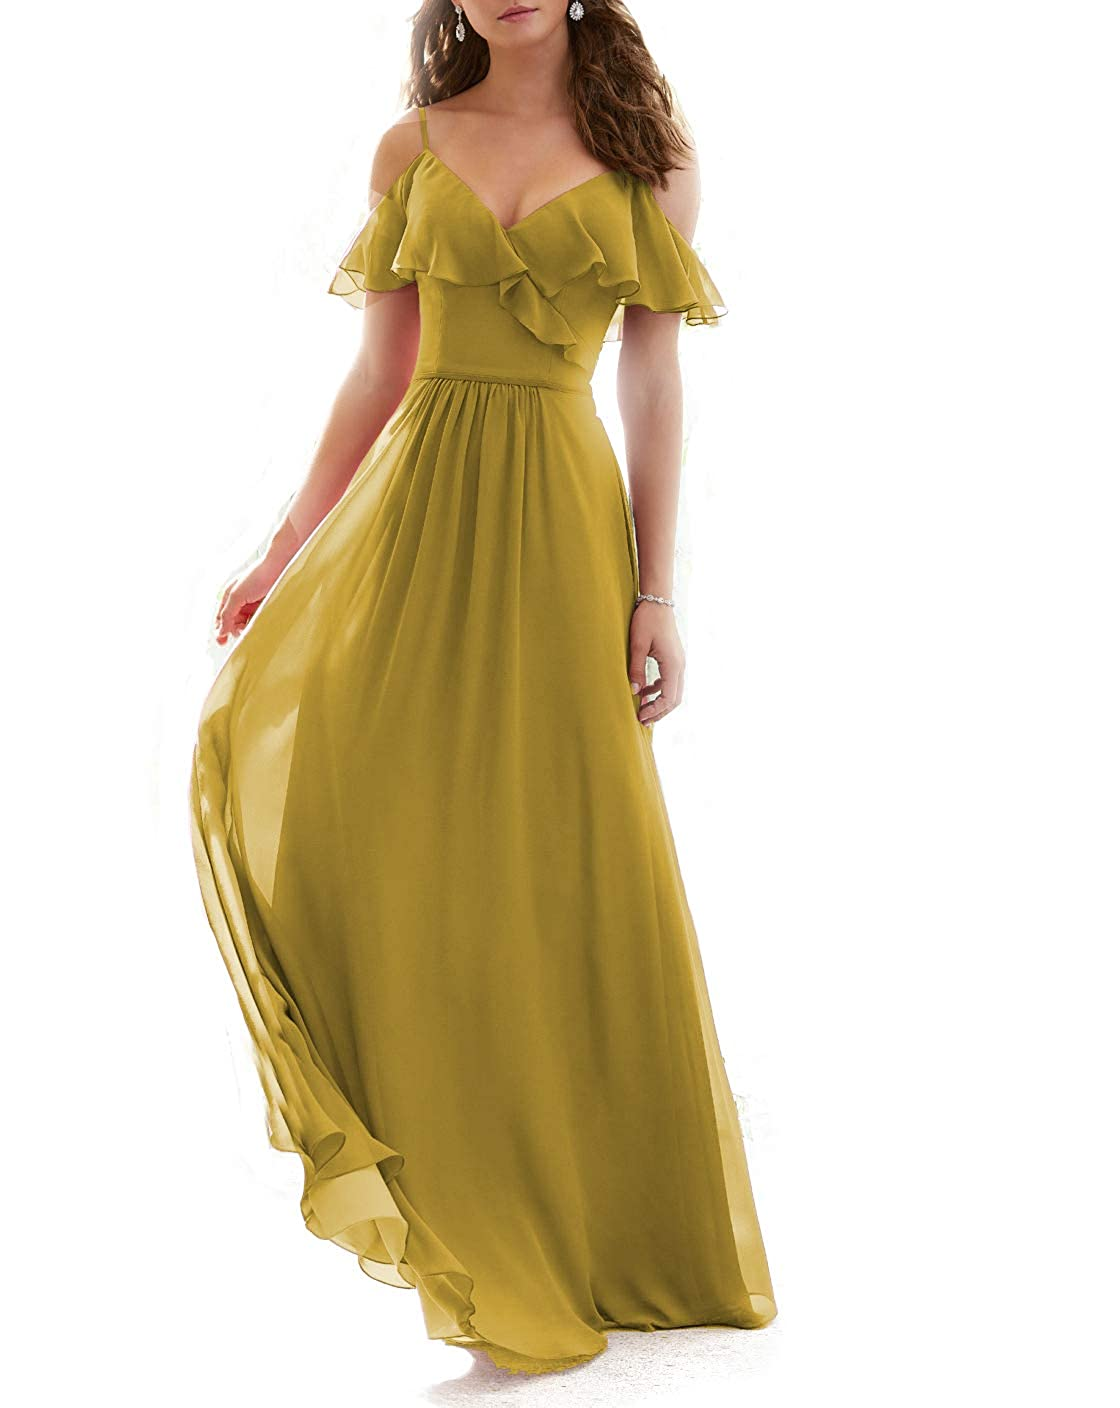 Ginger Stylefun Ruffled VNeckline Bridesmaid Gowns Spaghetti Straps Long Prom Party Dress for Women's KN003